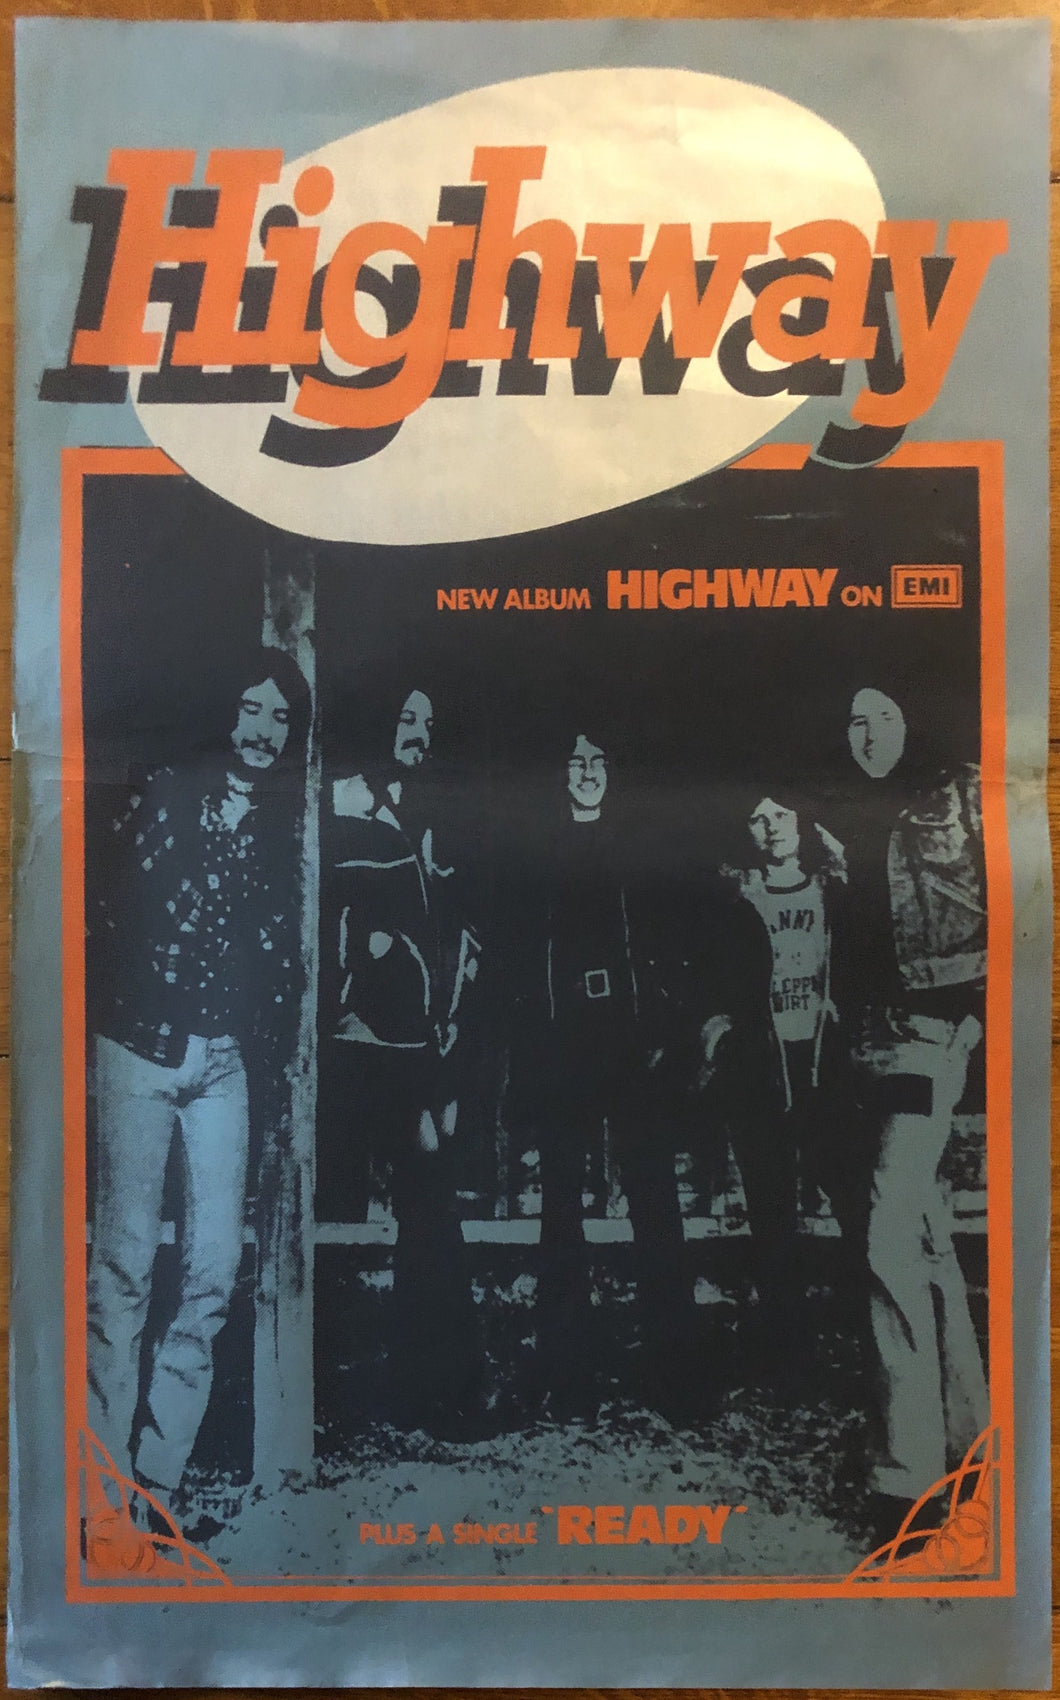 Highway Debut Album and Ready Original Promo Poster EMI Records 1974